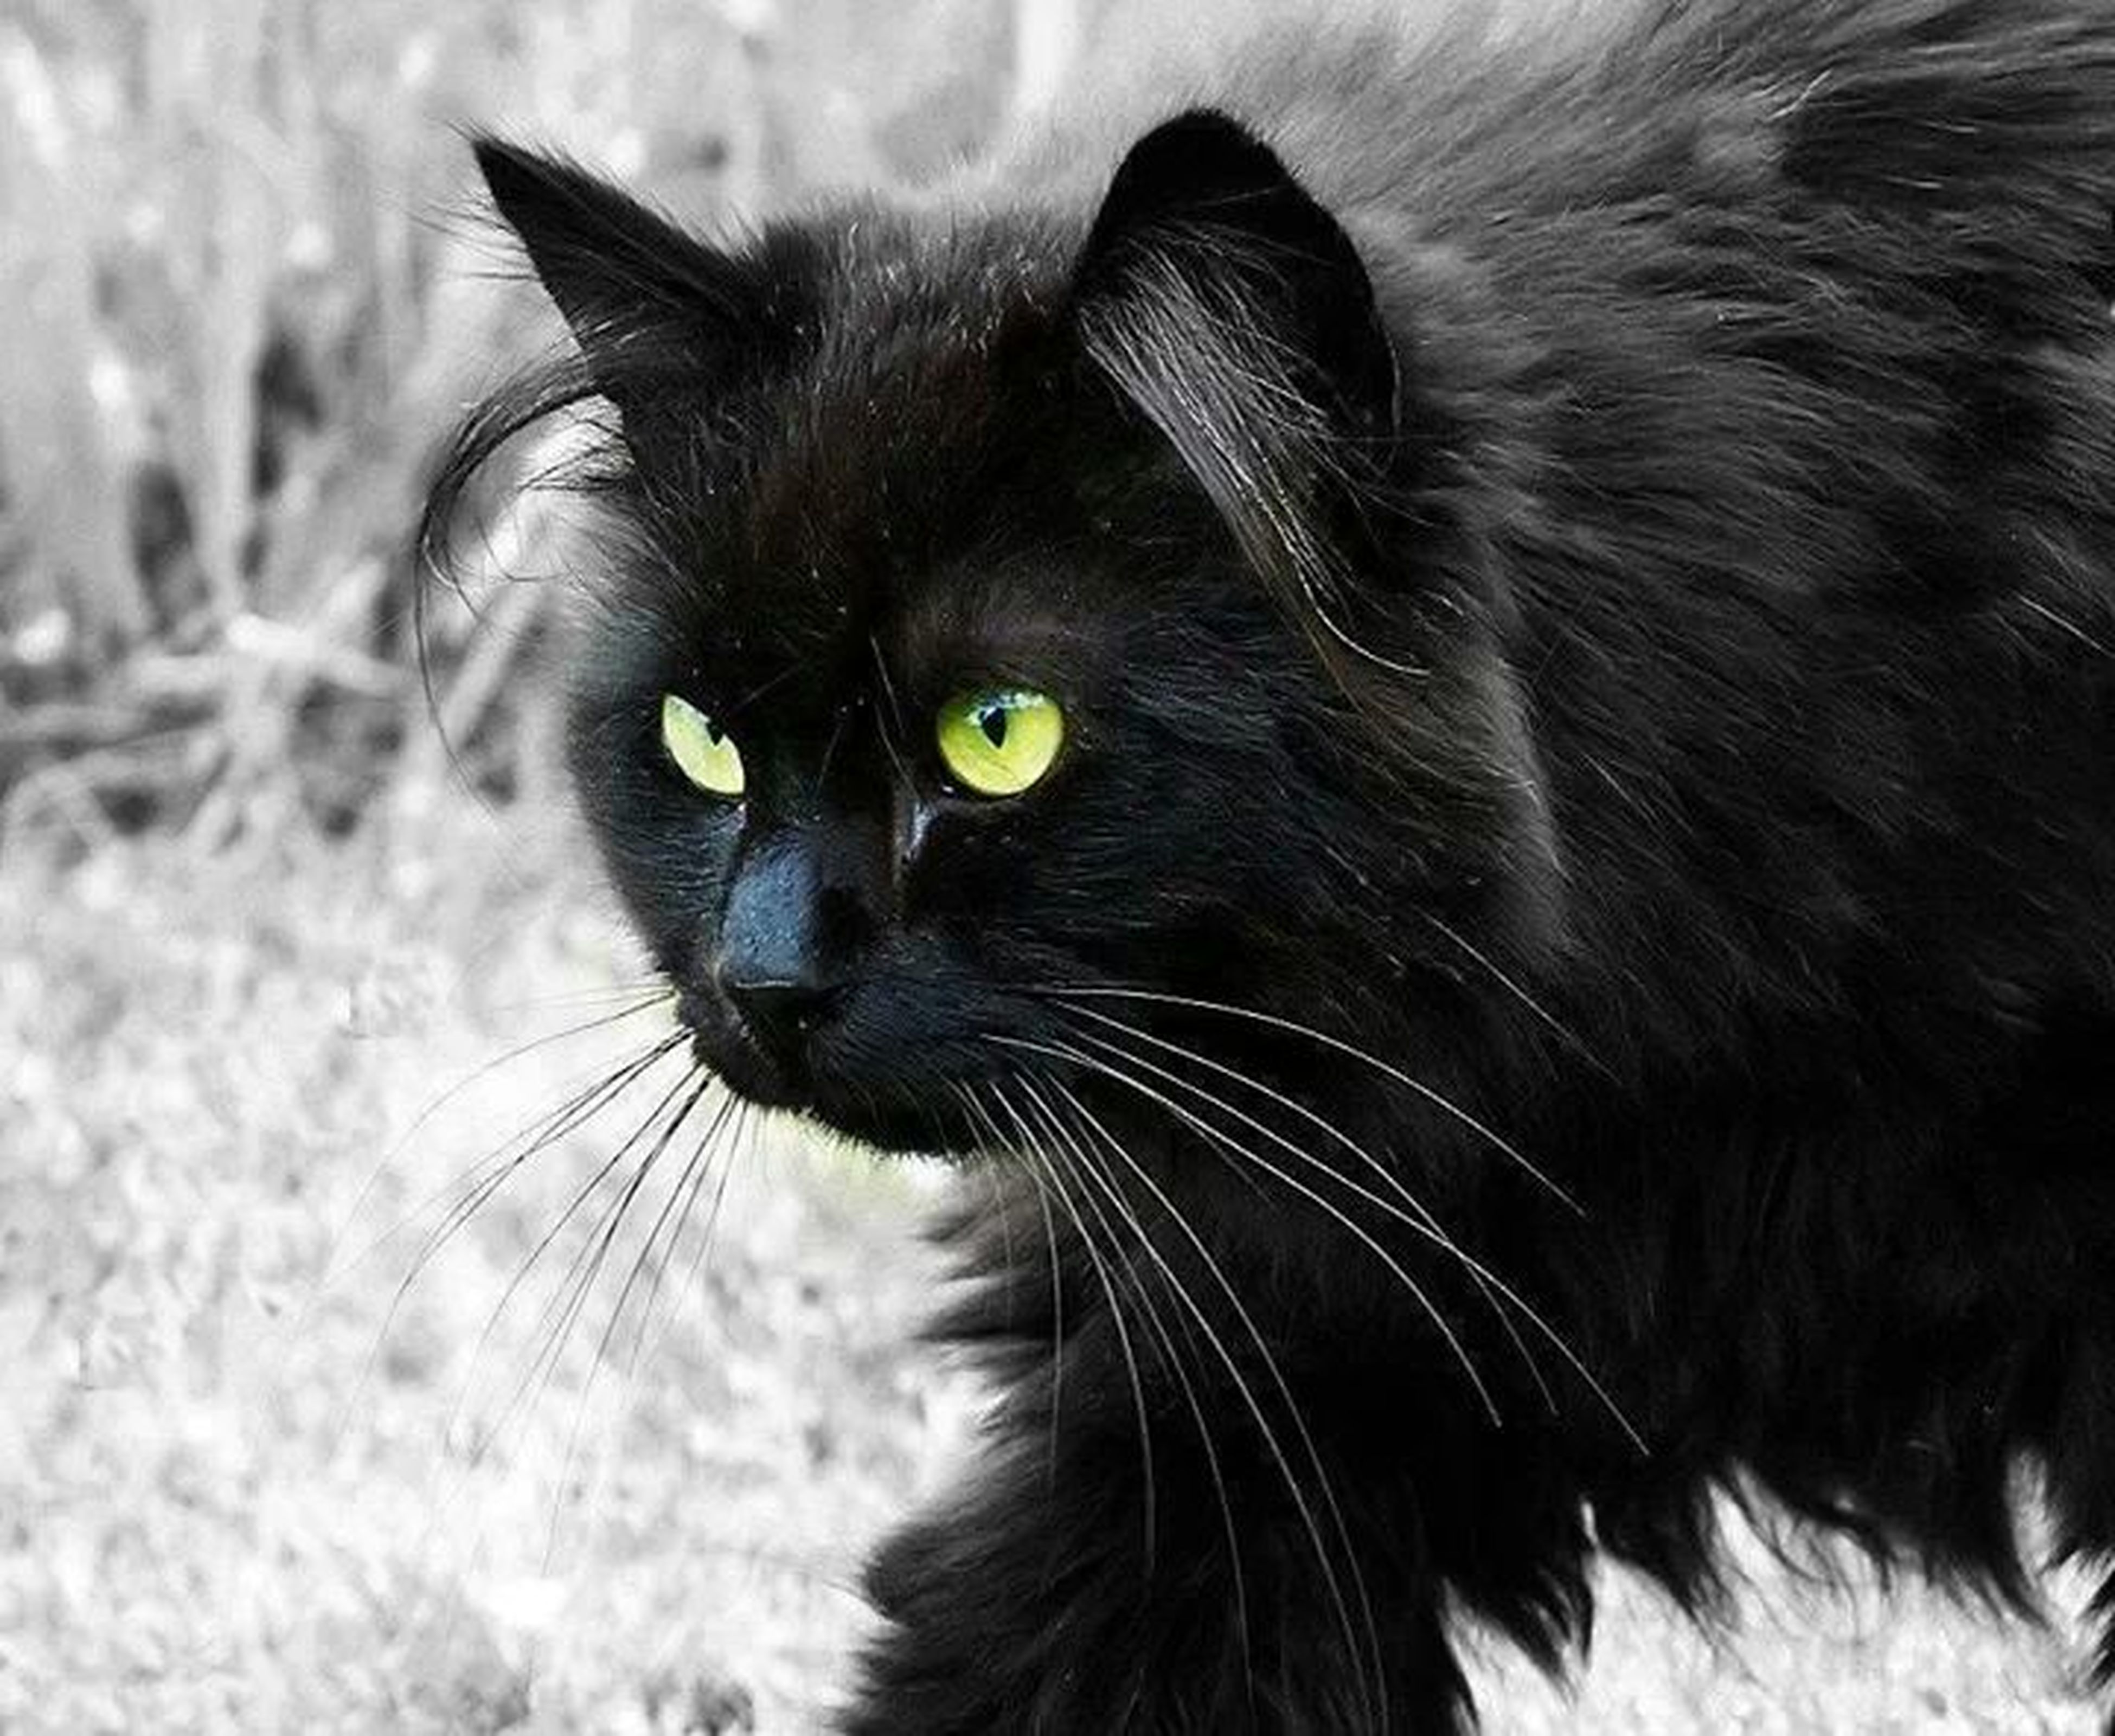 one animal, animal themes, pets, domestic cat, domestic animals, mammal, cat, whisker, feline, black color, close-up, animal head, portrait, focus on foreground, animal eye, looking at camera, alertness, animal body part, field